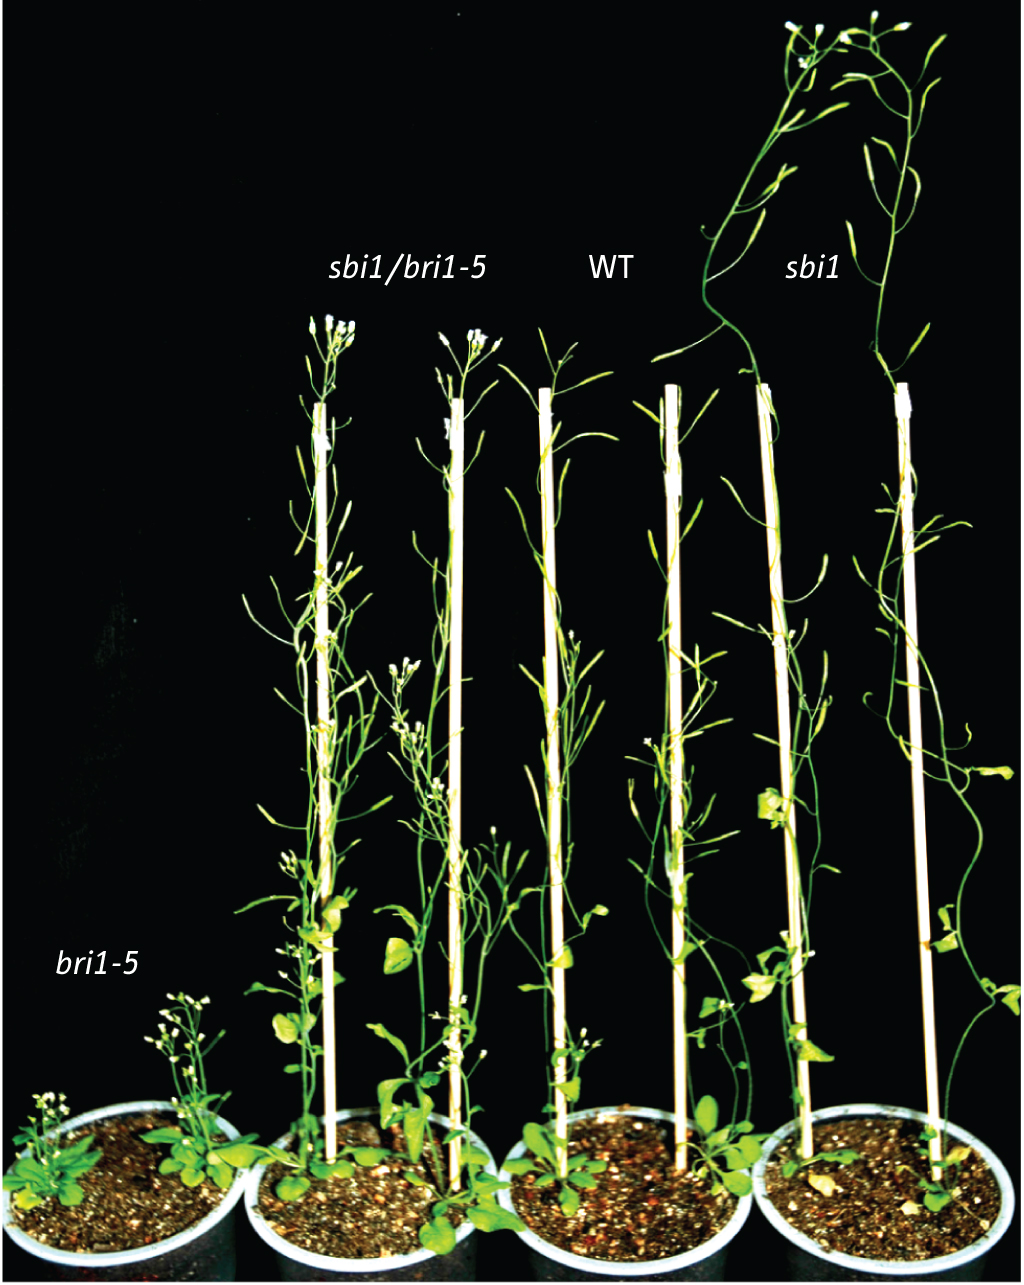 brassinosteroids and plant steroid hormone signaling